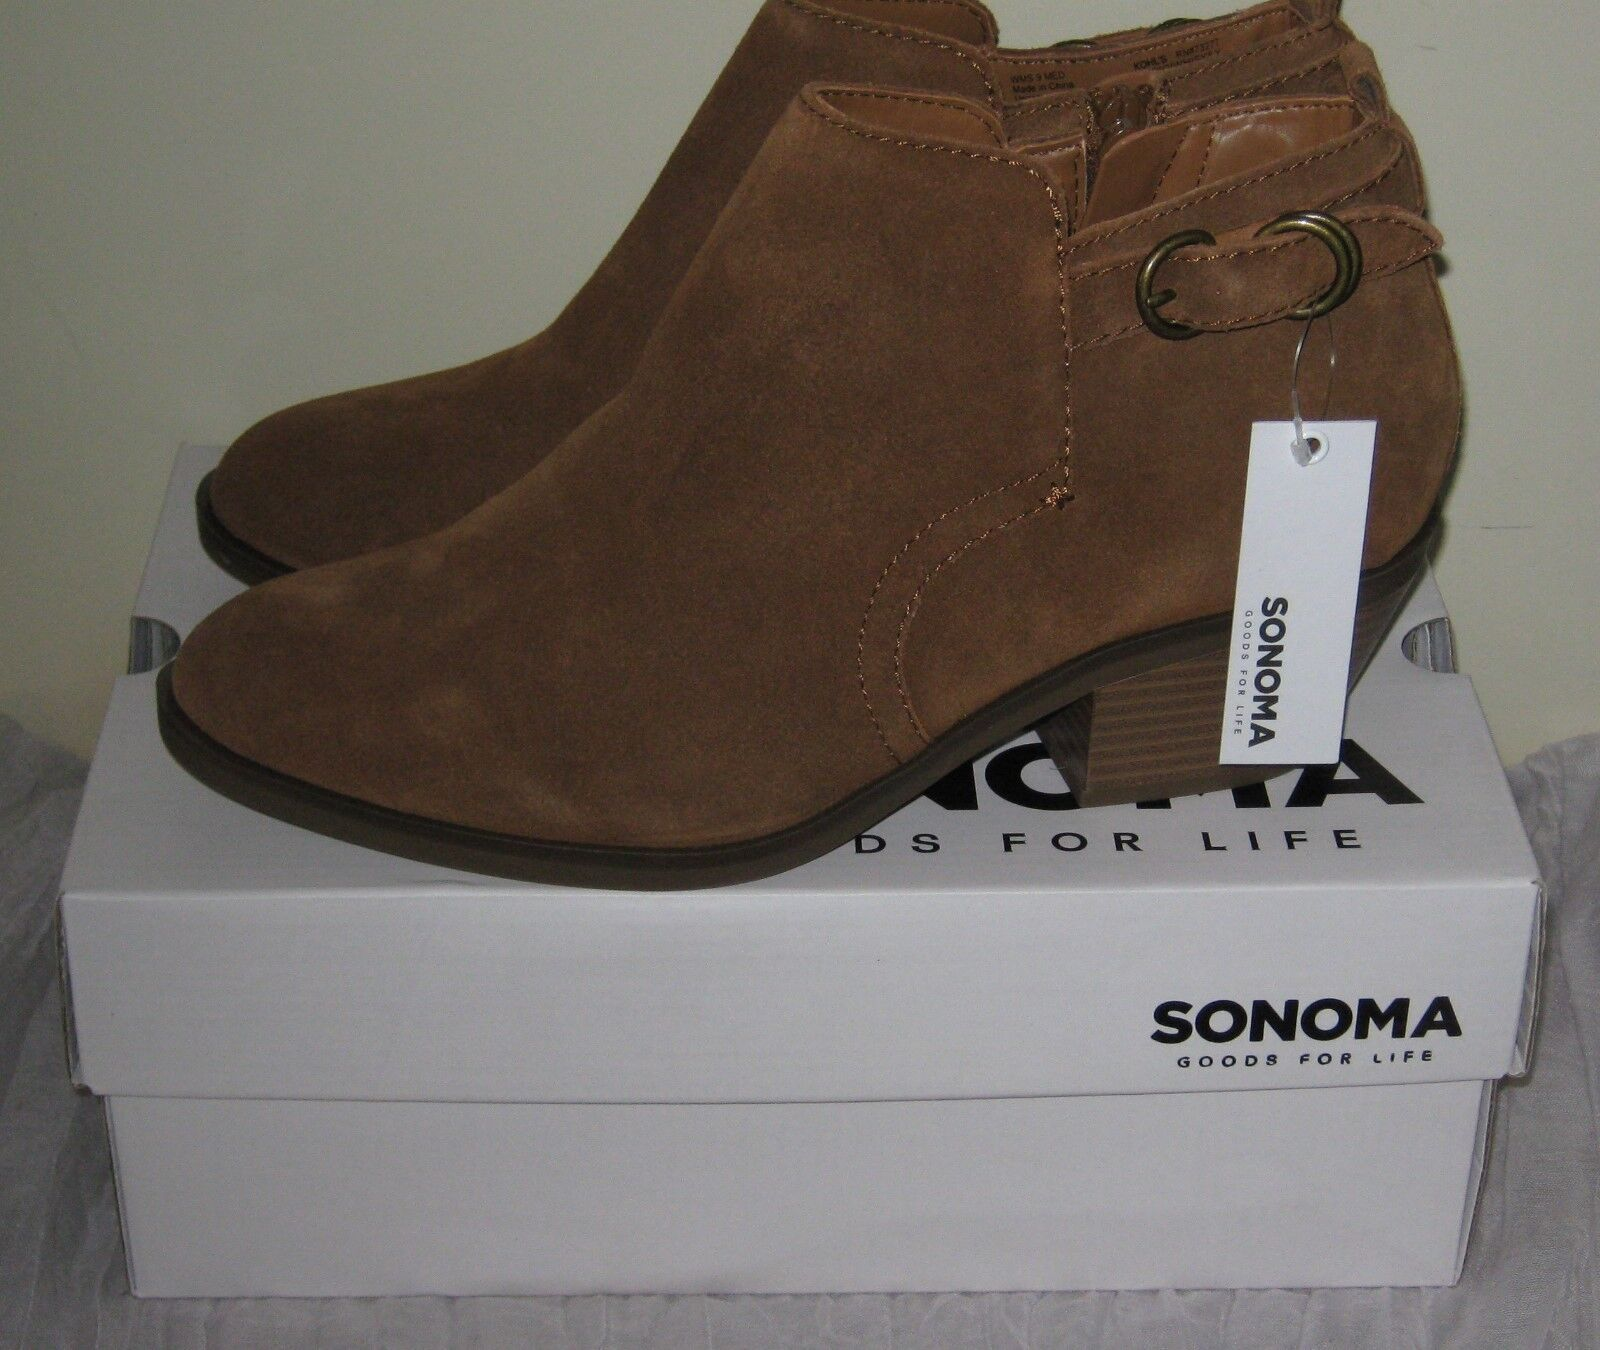 Sonoma Brown Suede Leather Ankle Boots Booties Size Choices 9/8/7.5/6.5 NIB#SH08